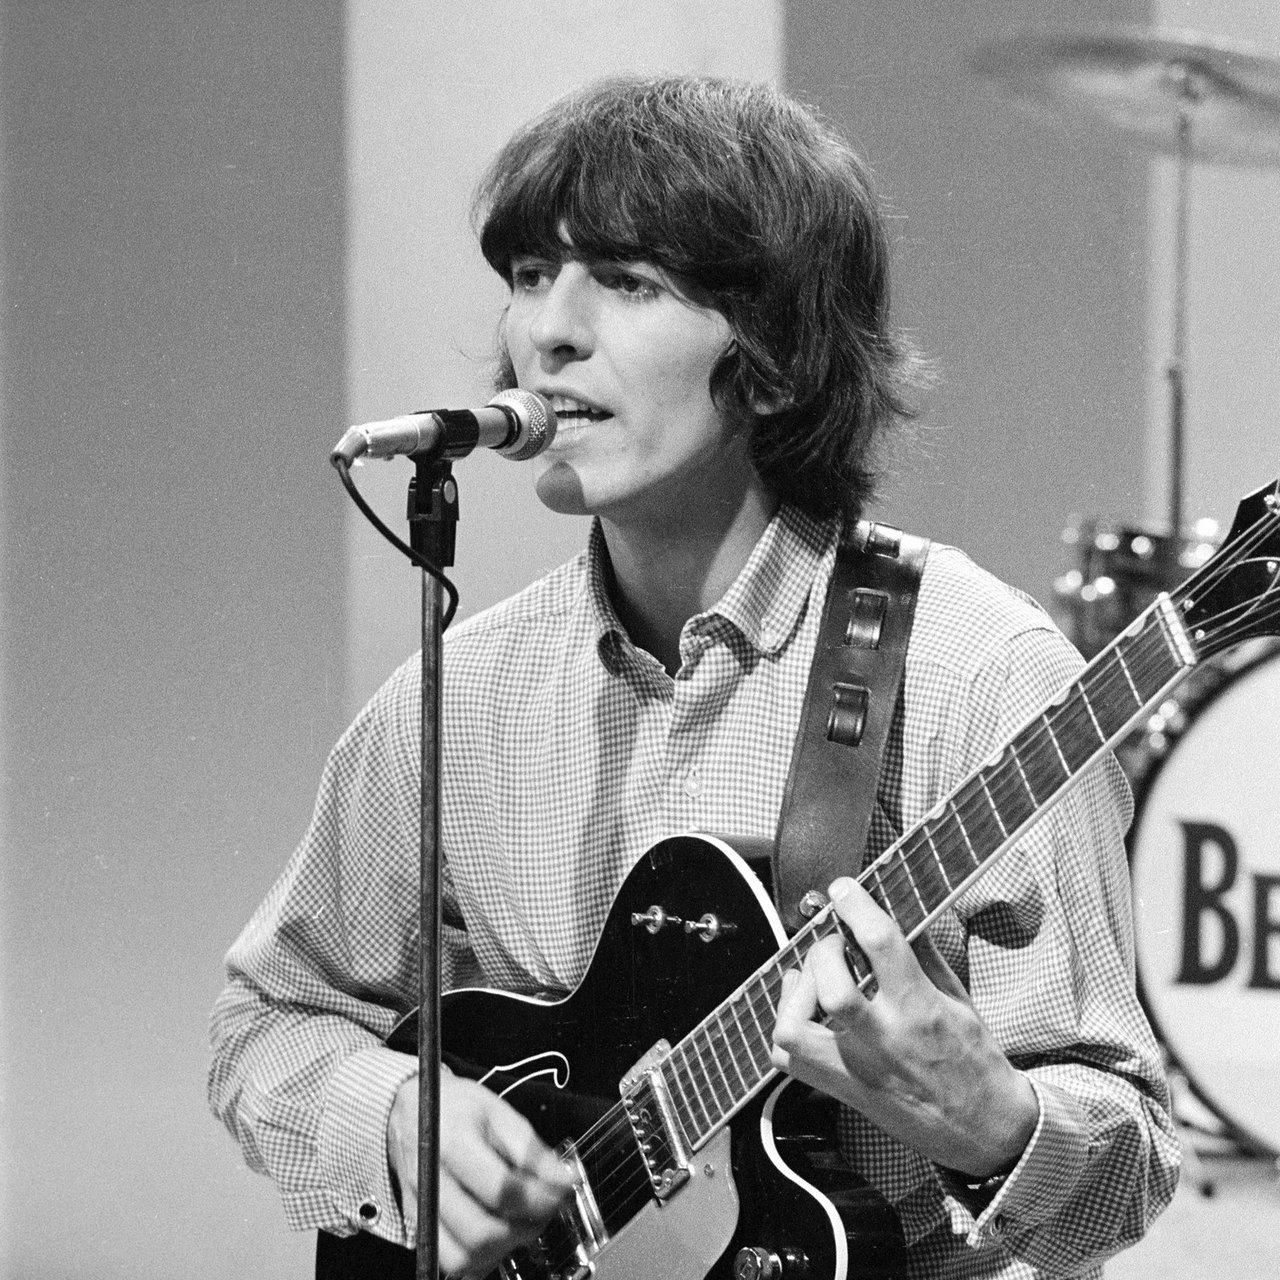 george harrison Read news updates about george harrison discover video clips of recent music performances and more on mtv.